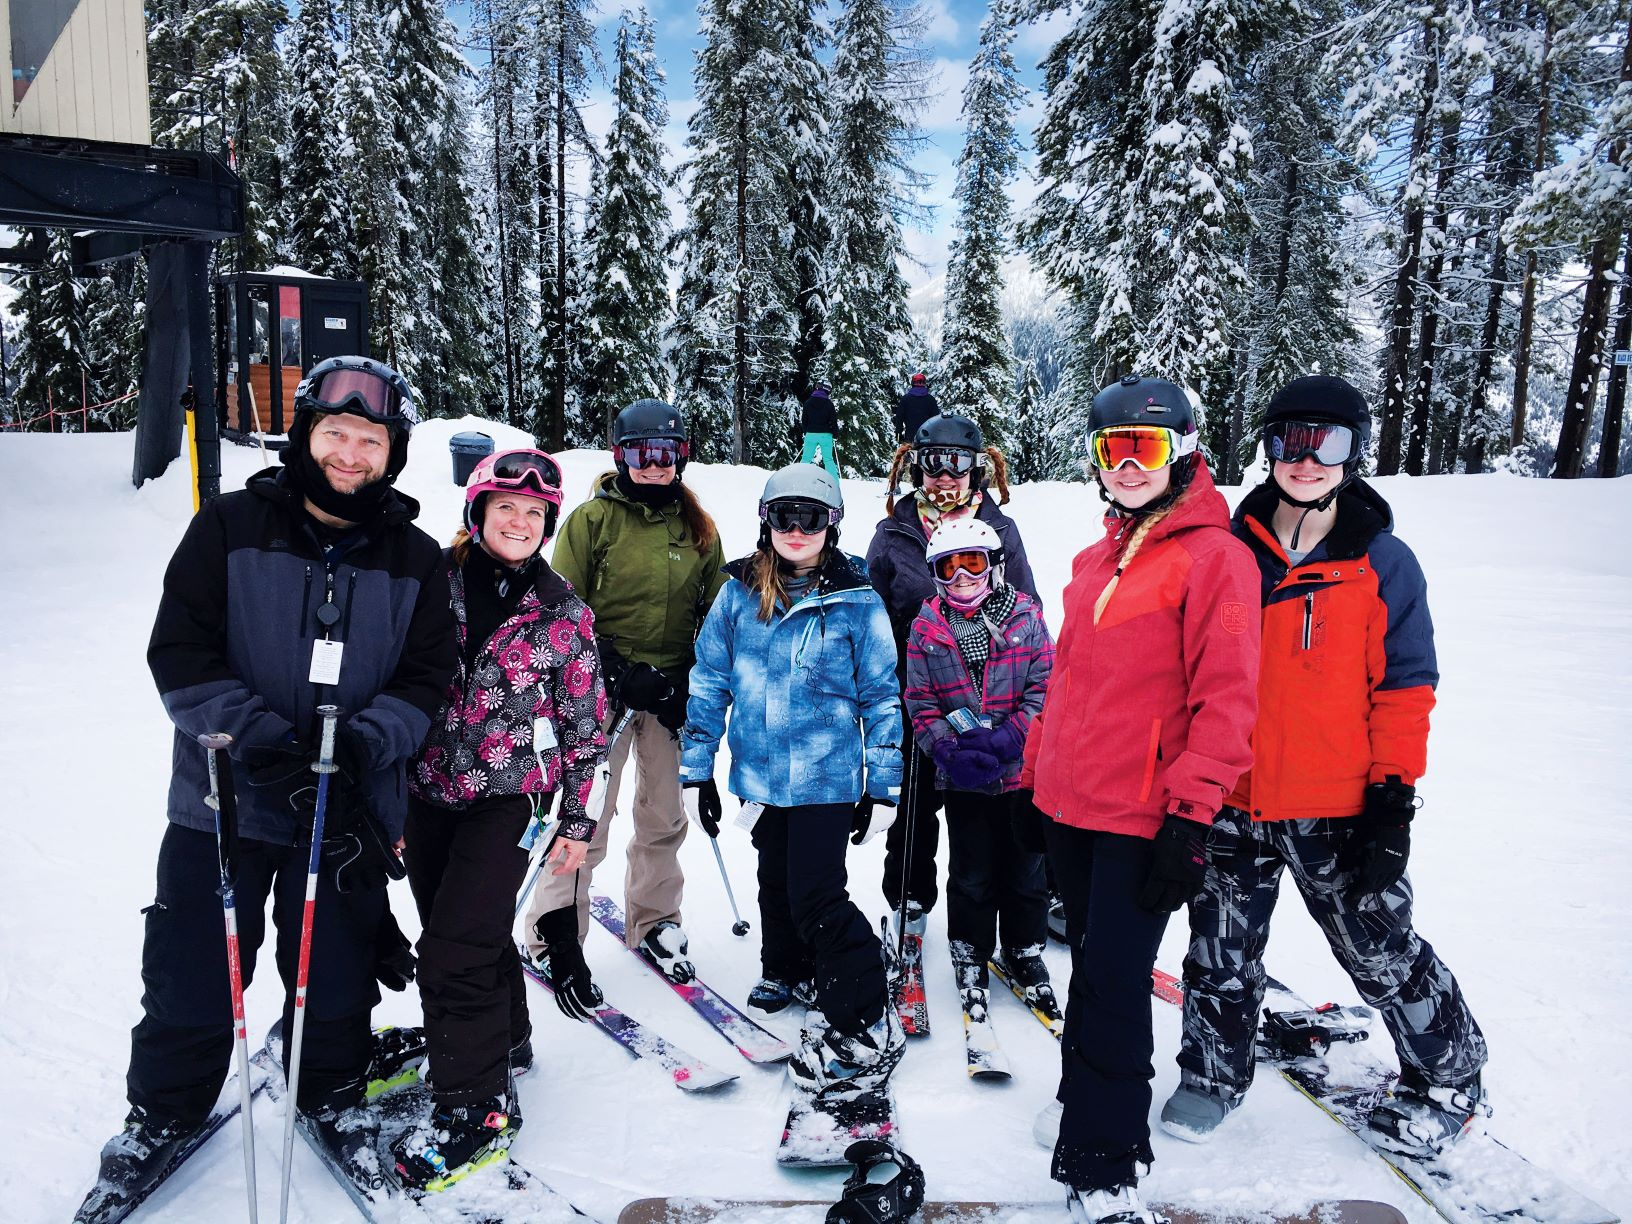 Kim Carpenter with her family of skiers. // Photo courtesy Kim Carpenter